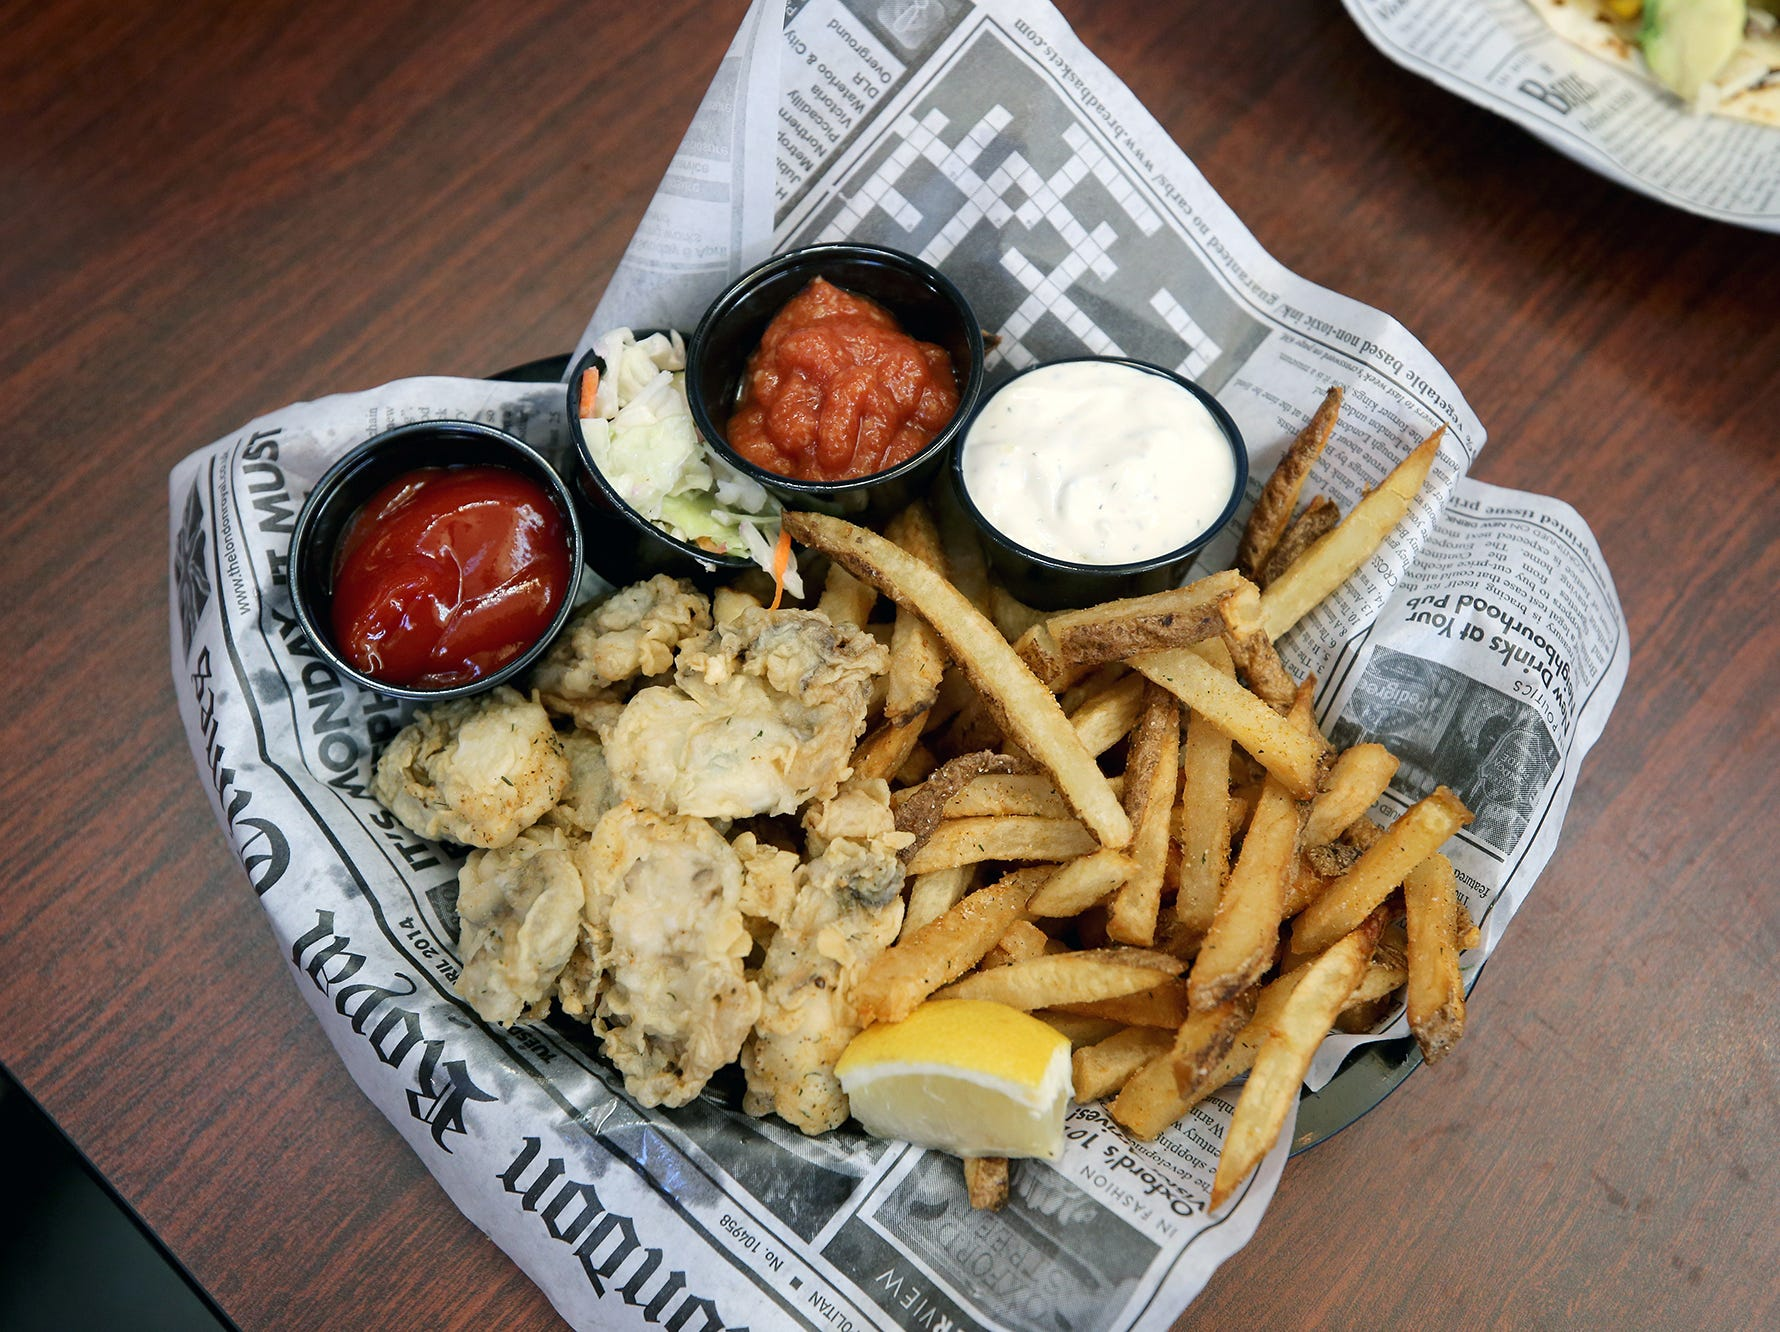 Food in a basket with a paper at The Dock Bar & Eatery in the Port Orchard Market.